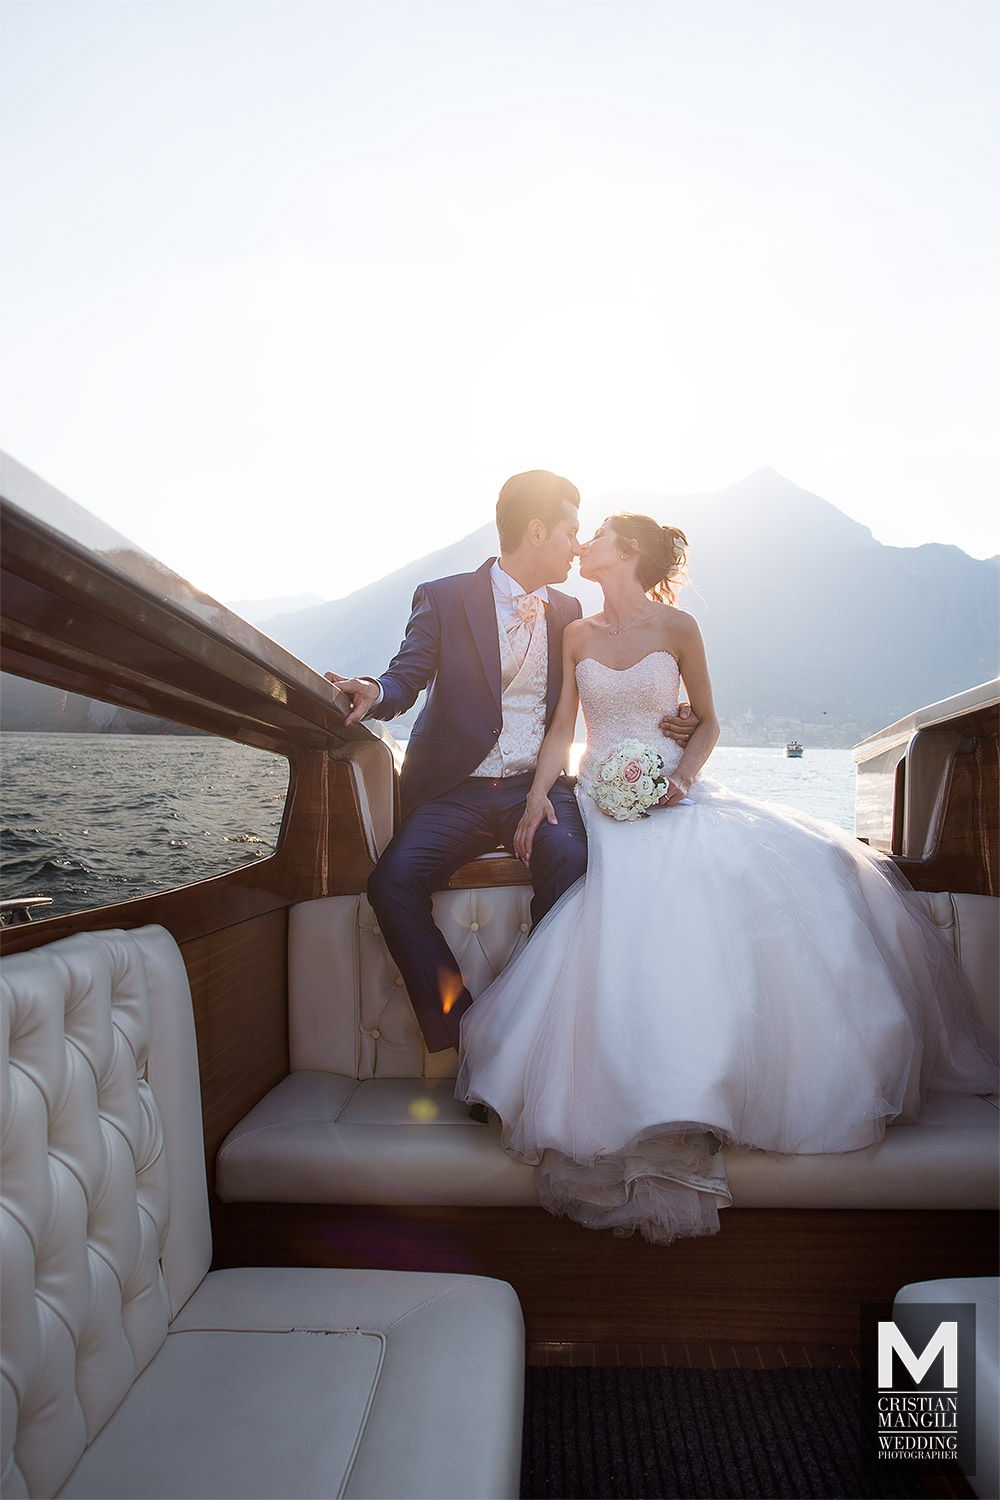 romantic-wedding-photo-como-lake